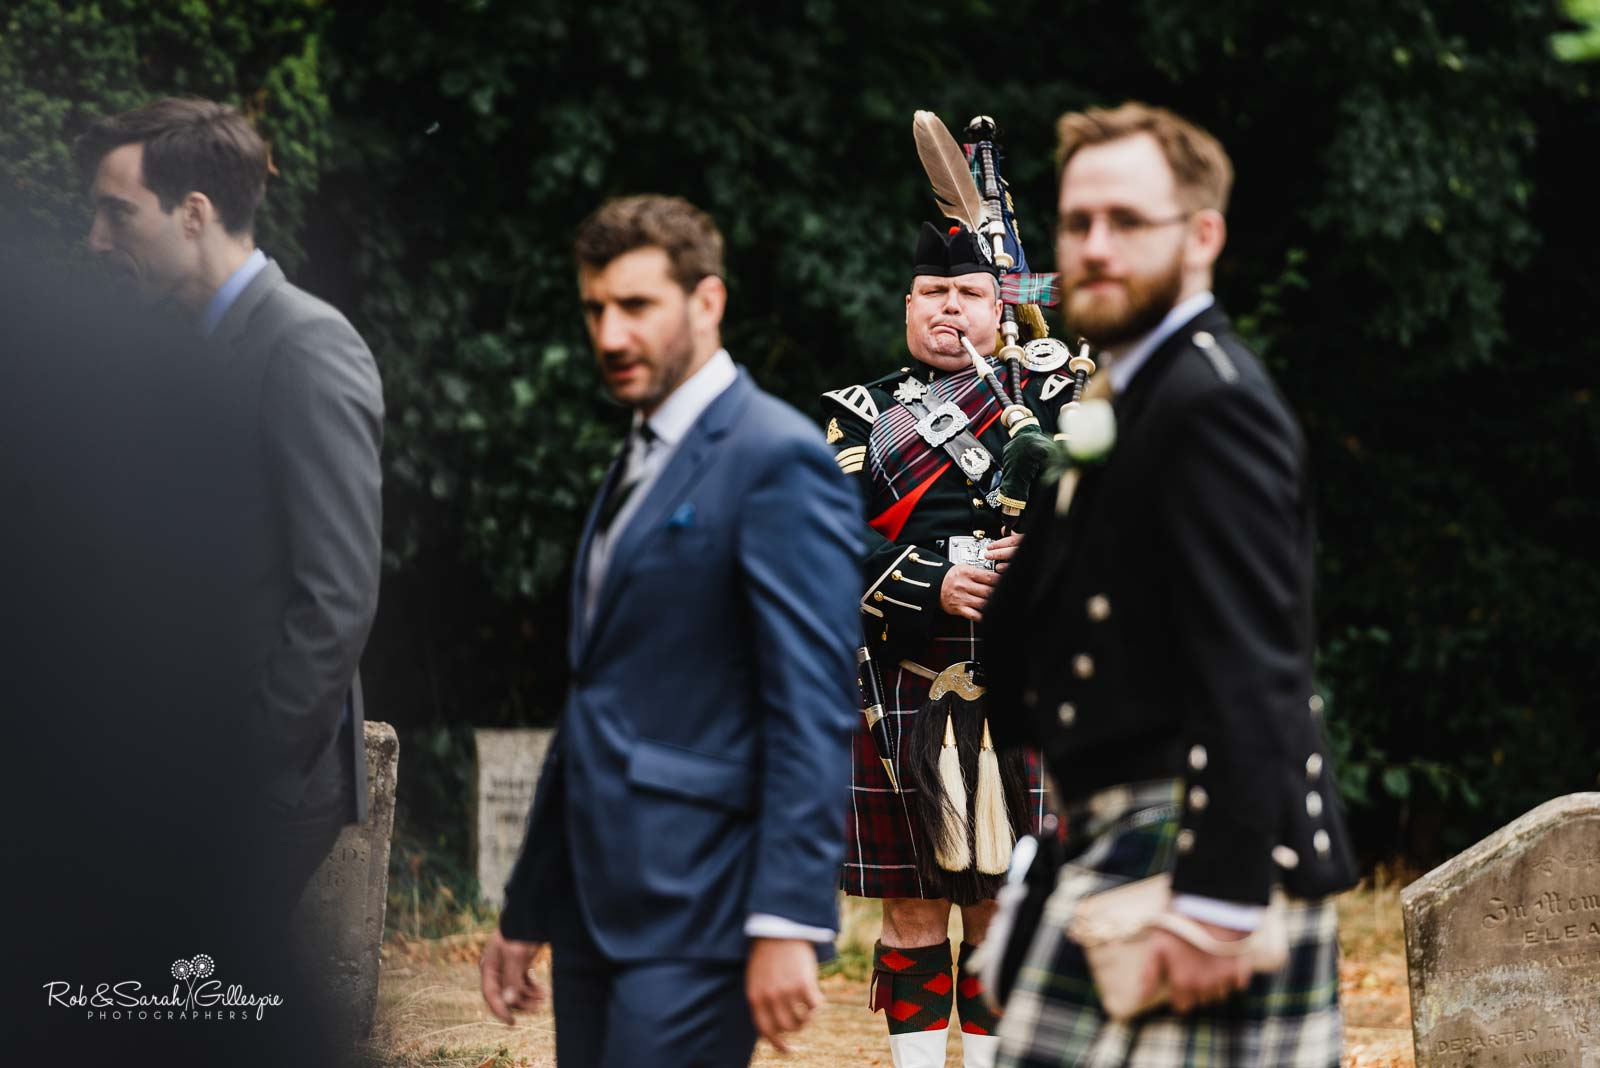 Piper plays bagpipes at St Giles church Packwood wedding